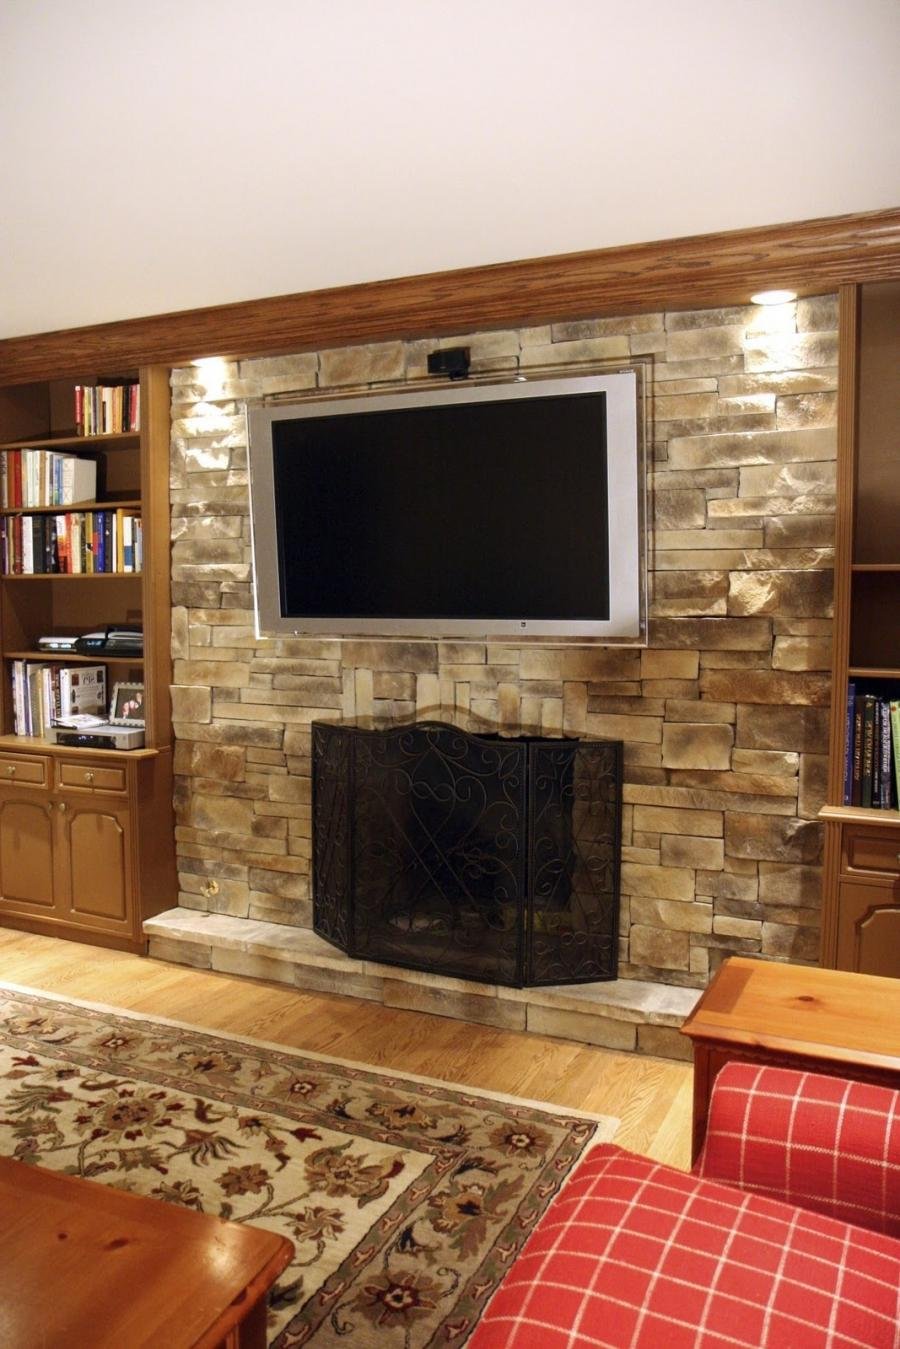 North Star Stone Stone Fireplaces Stone Exteriors: Raised Hearth Fireplaces Photos